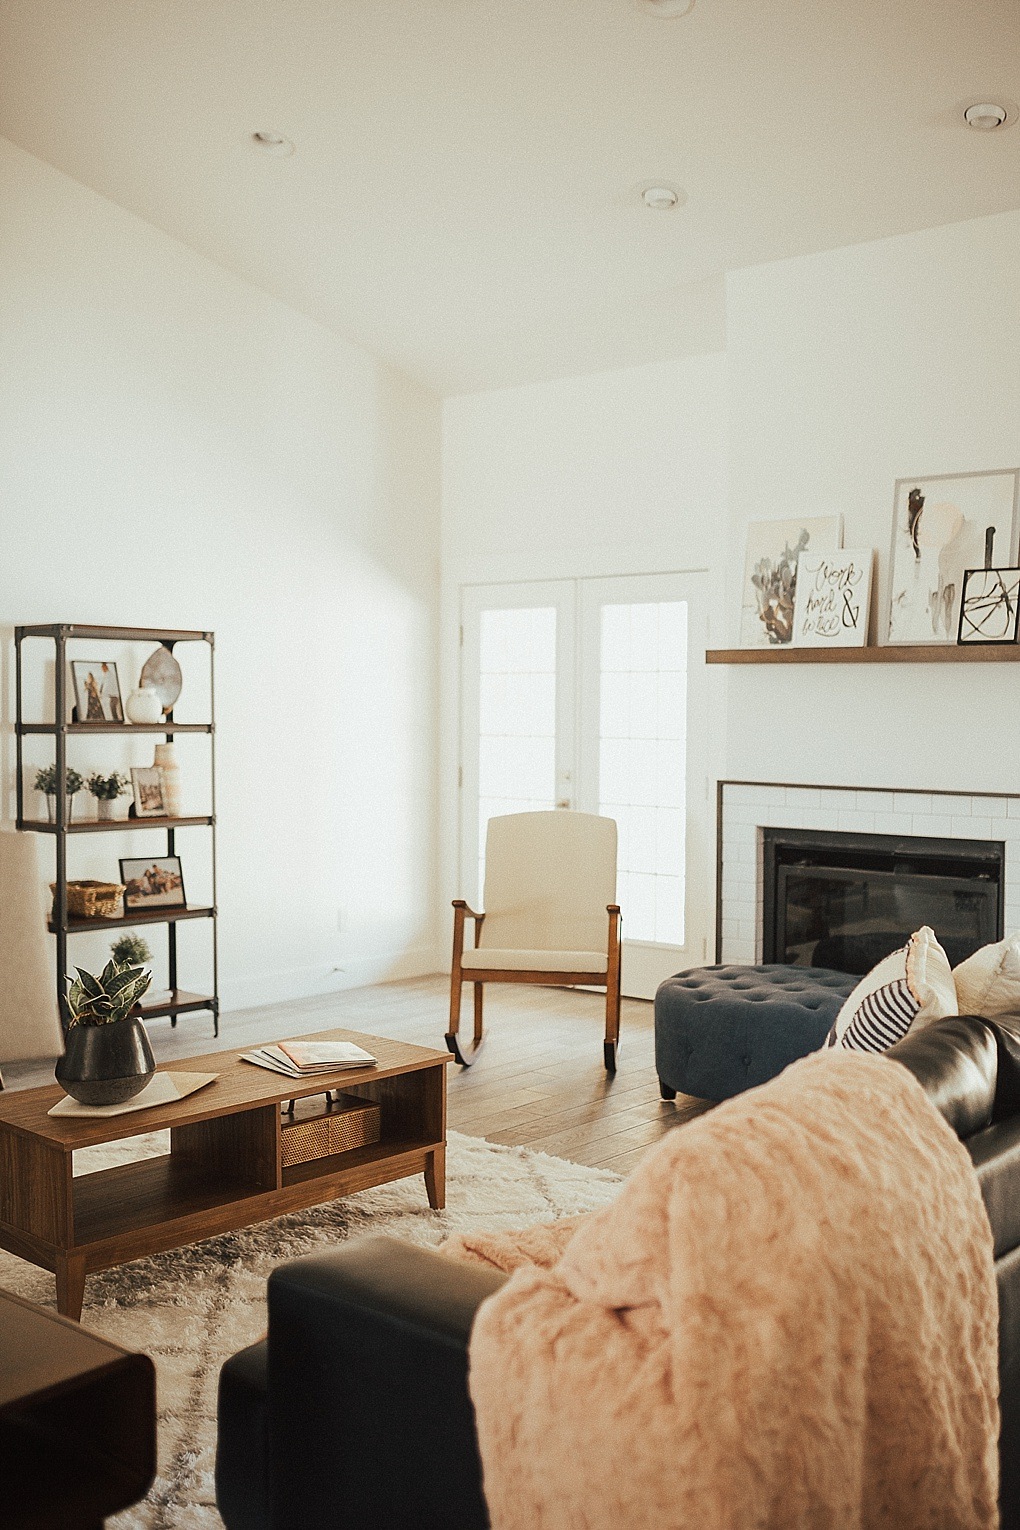 Room Reveal - Our Modern Mid Century Living Room by popular Utah blogger Dani Marie